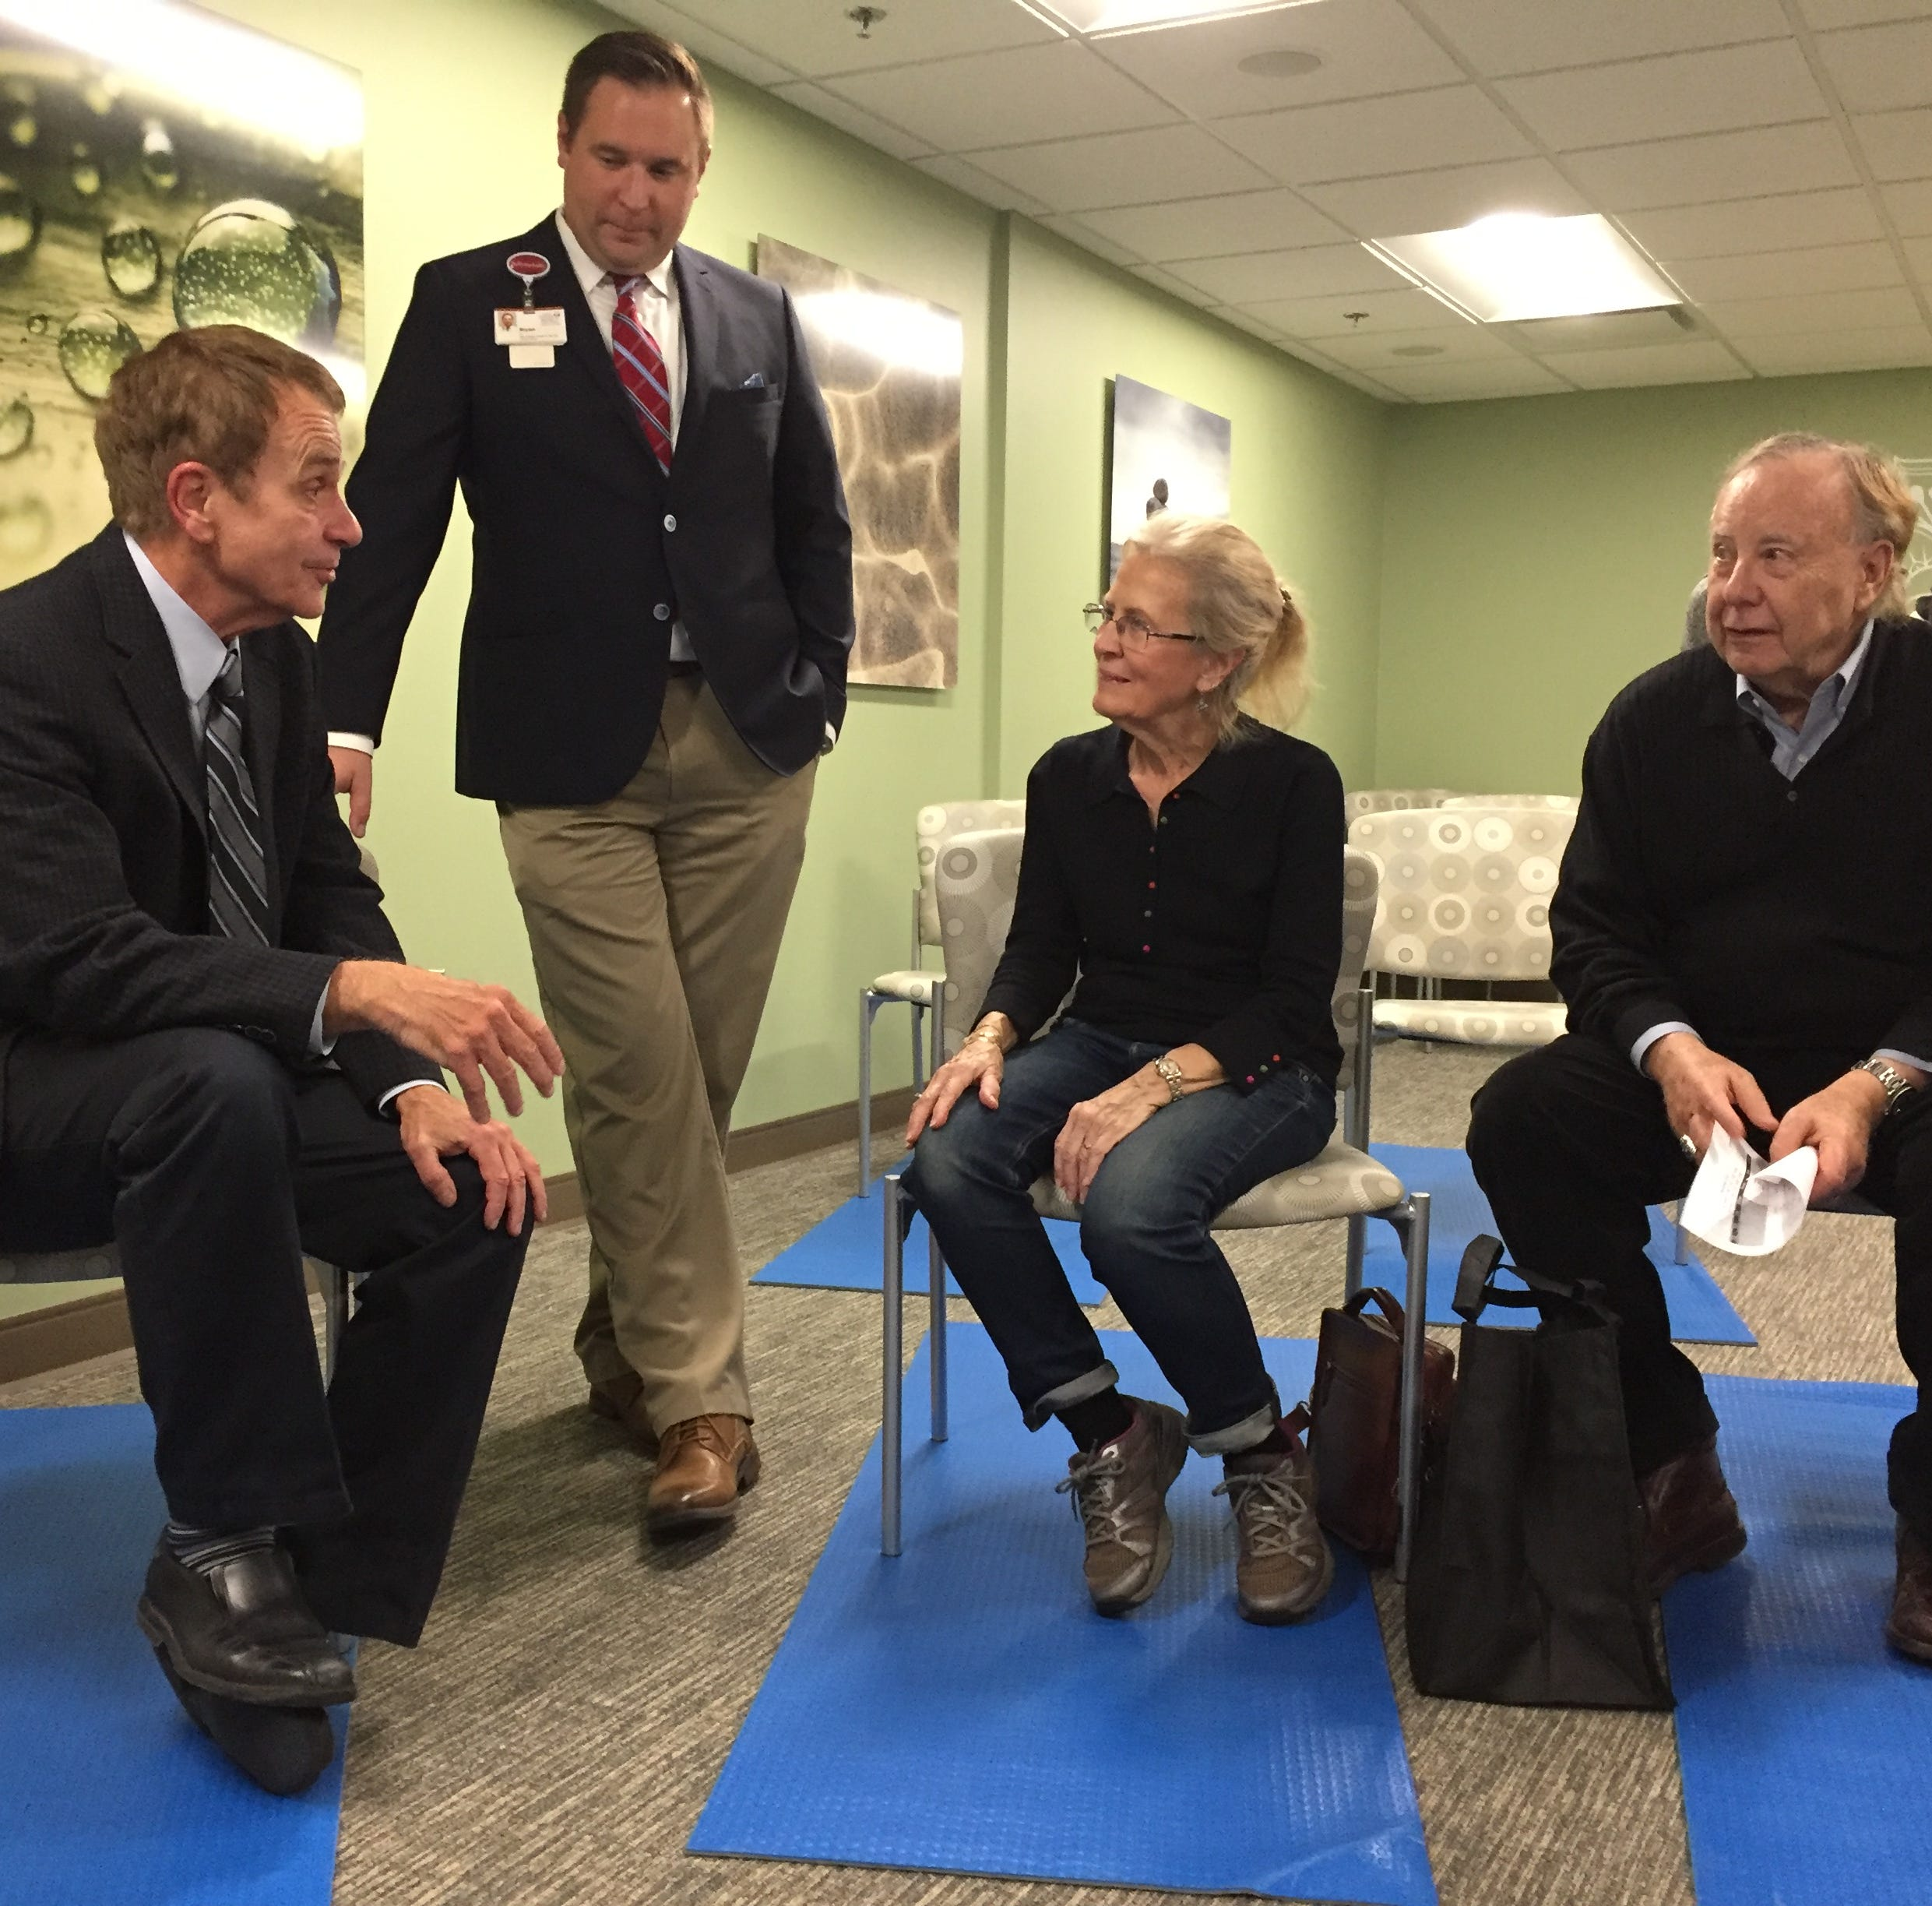 From left, Dr. Frank Smith, St. Joseph Mercy Ann Arbor and Livingston 's medical director of Intensive Cardiac Rehabilitation, and cardiac rehab manager Bryan Foster speak with potential cardiac rehab program patients Les and Jackie Stiner in the hospital's new yoga studio, Thursday, Nov. 15, 2018.